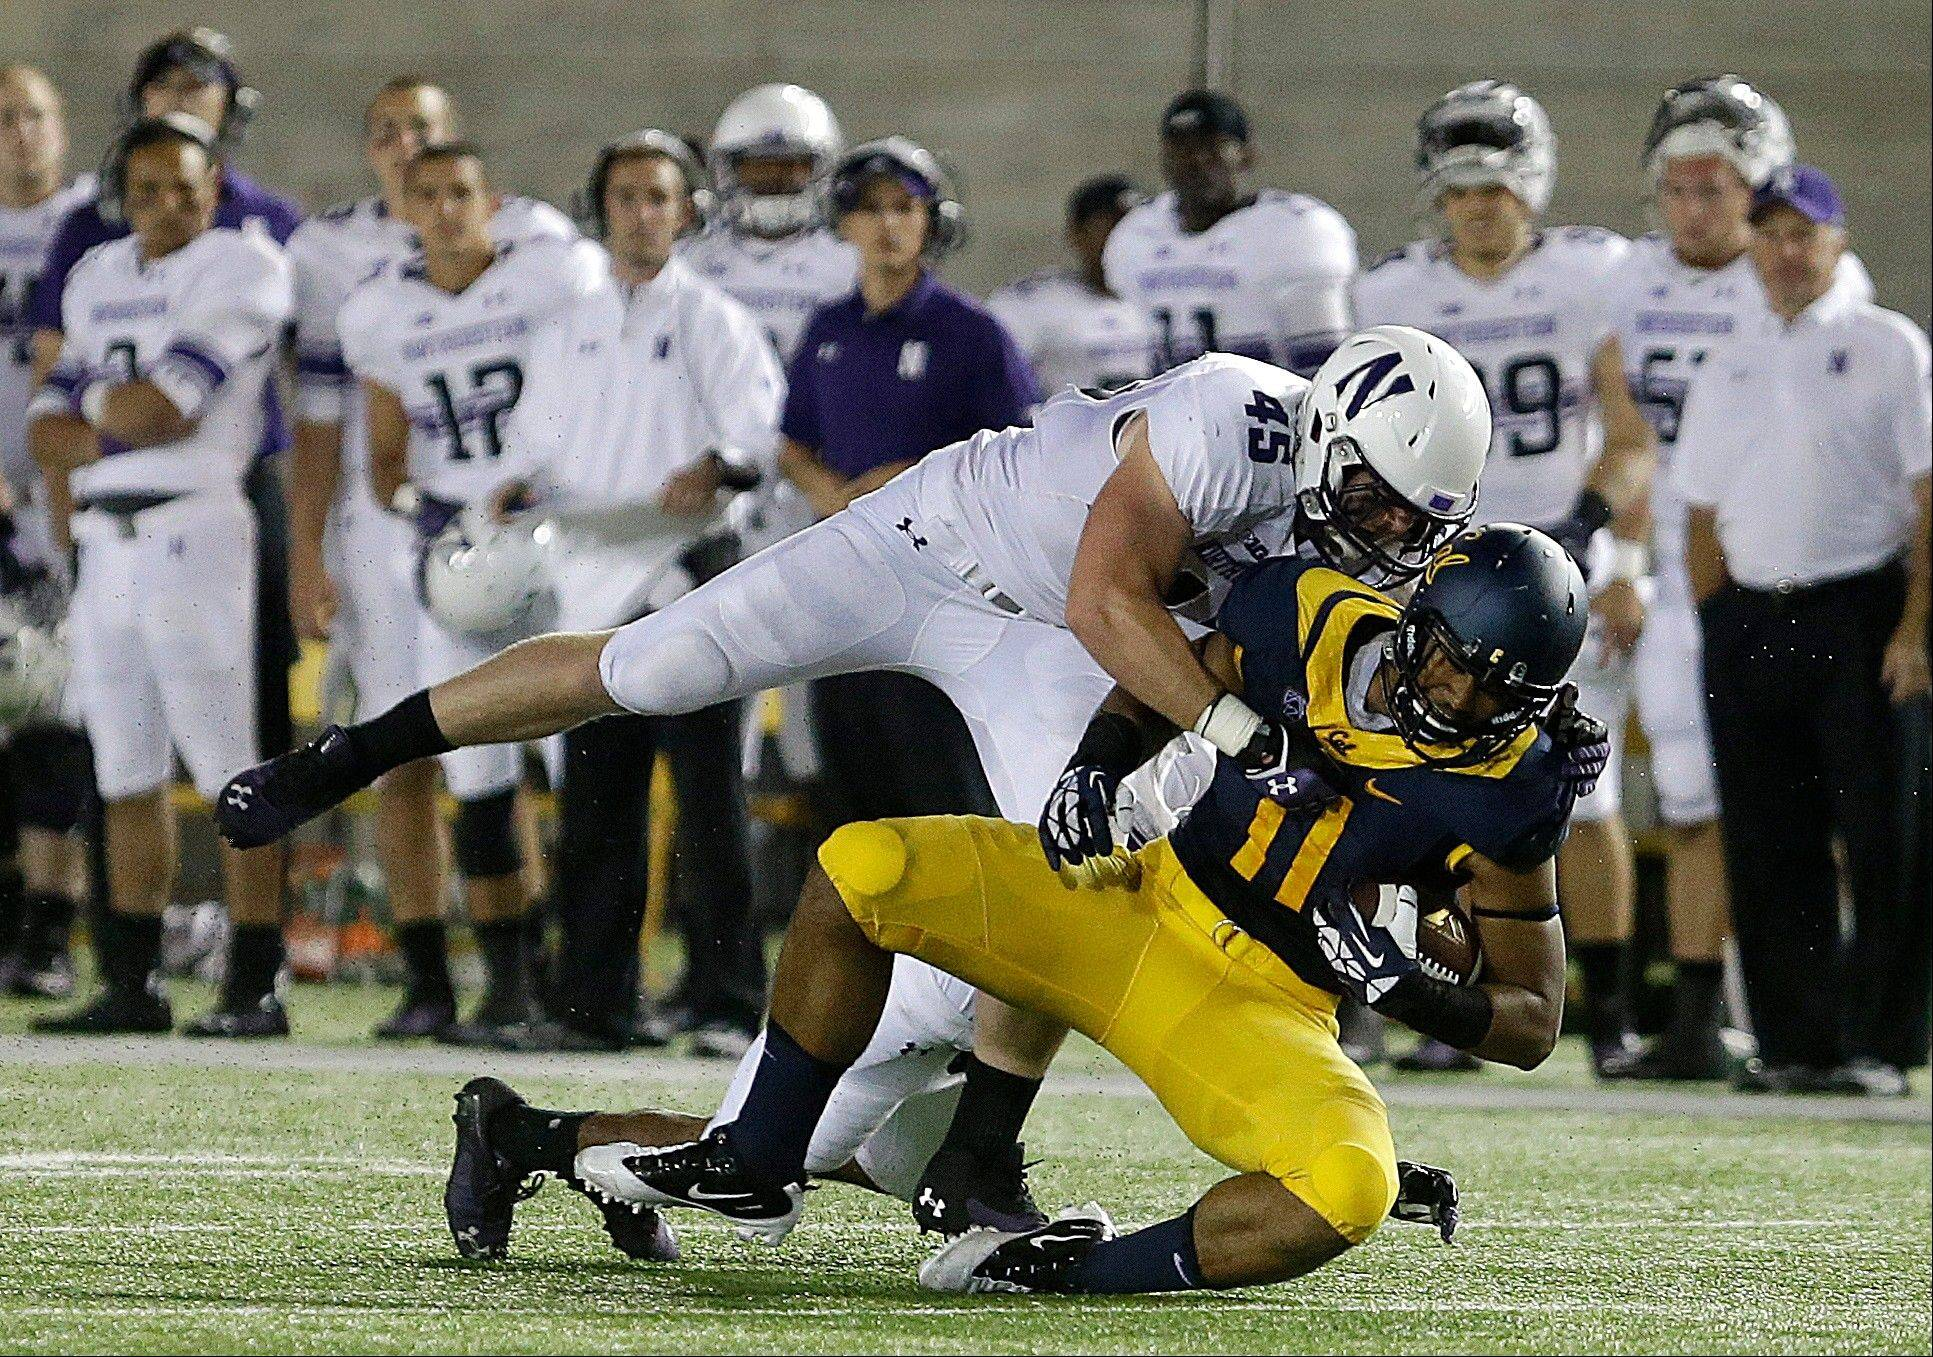 Northwestern's Collin Ellis (45) tackles California's Richard Rodgers (11) during the second half of an NCAA college football game on Saturday, Aug. 31, 2013, in Berkeley, Calif.